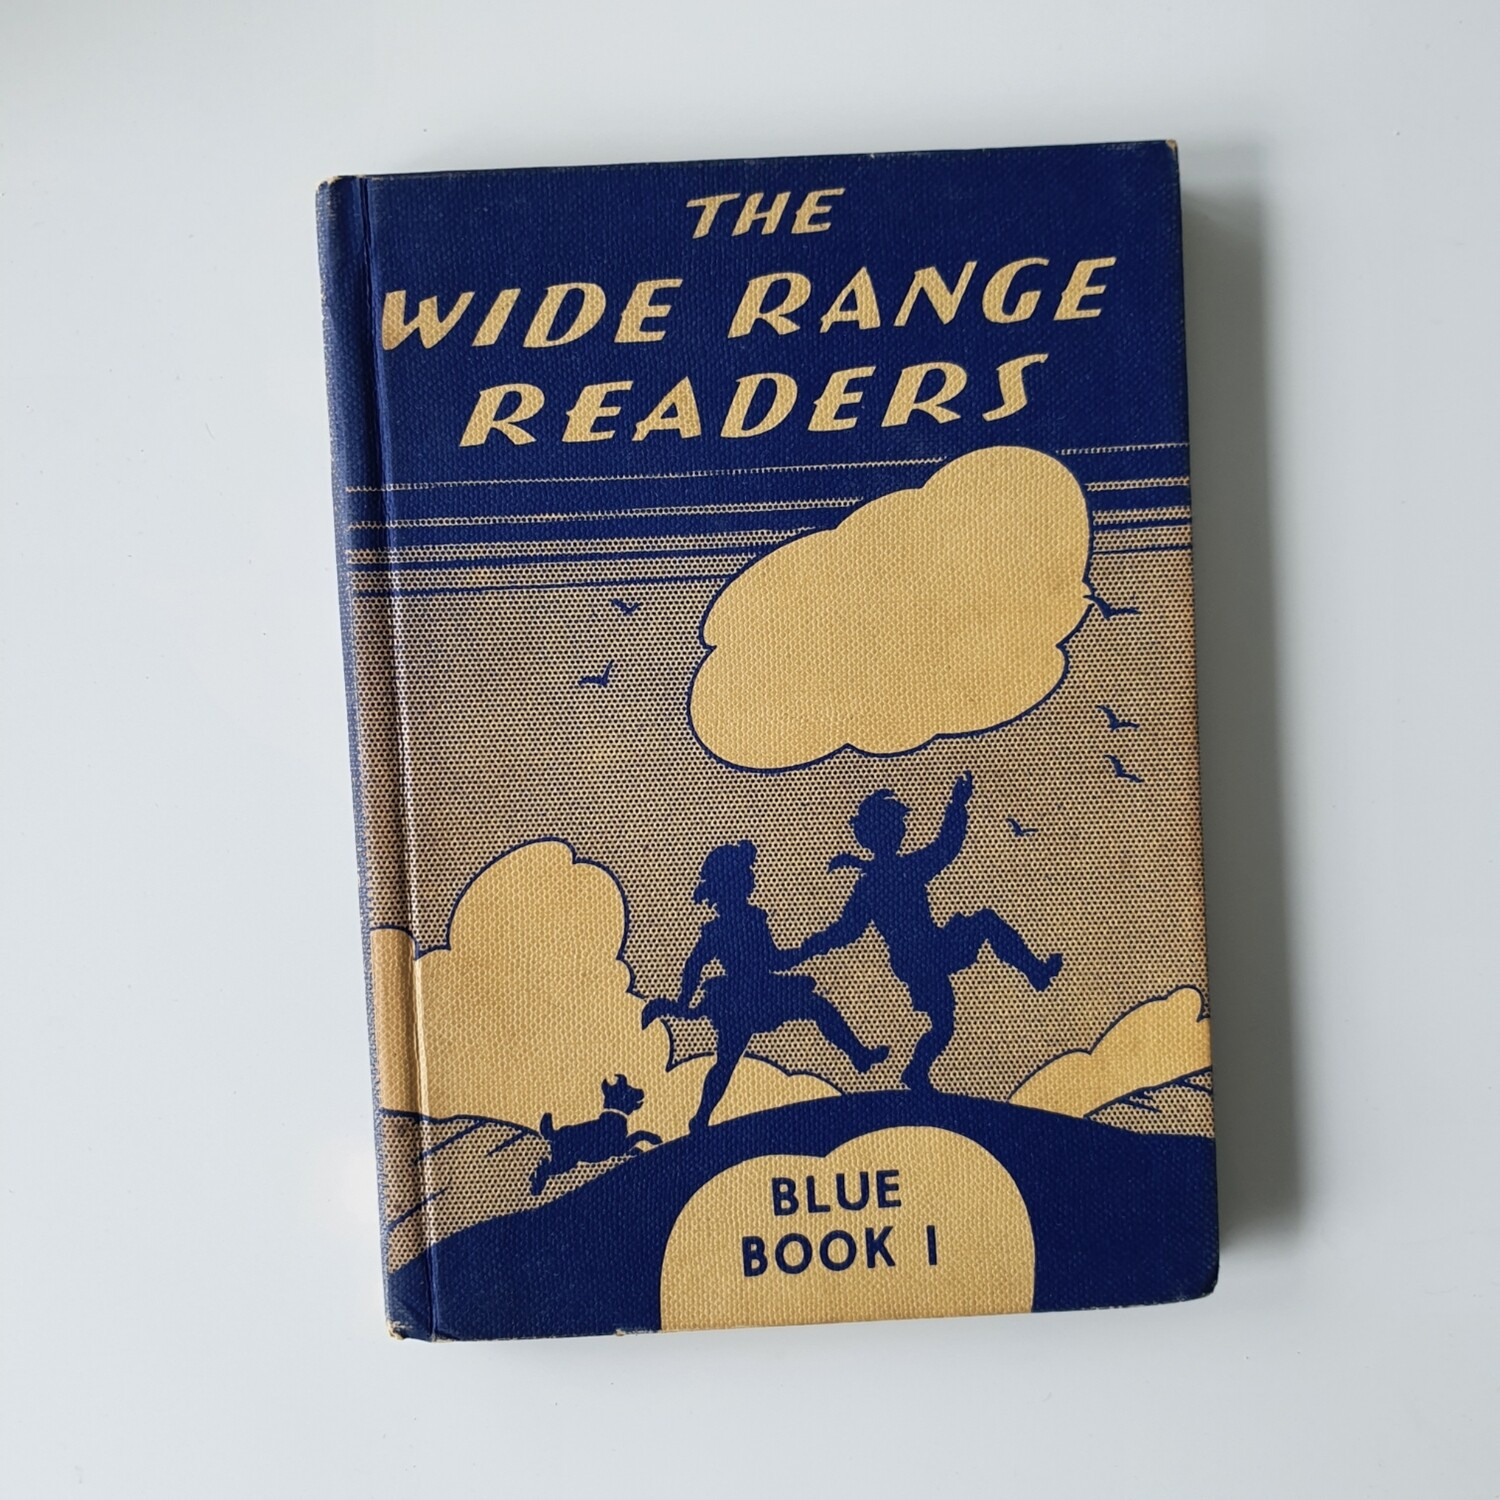 1958 The Wide Range Readers - Blue Book 1